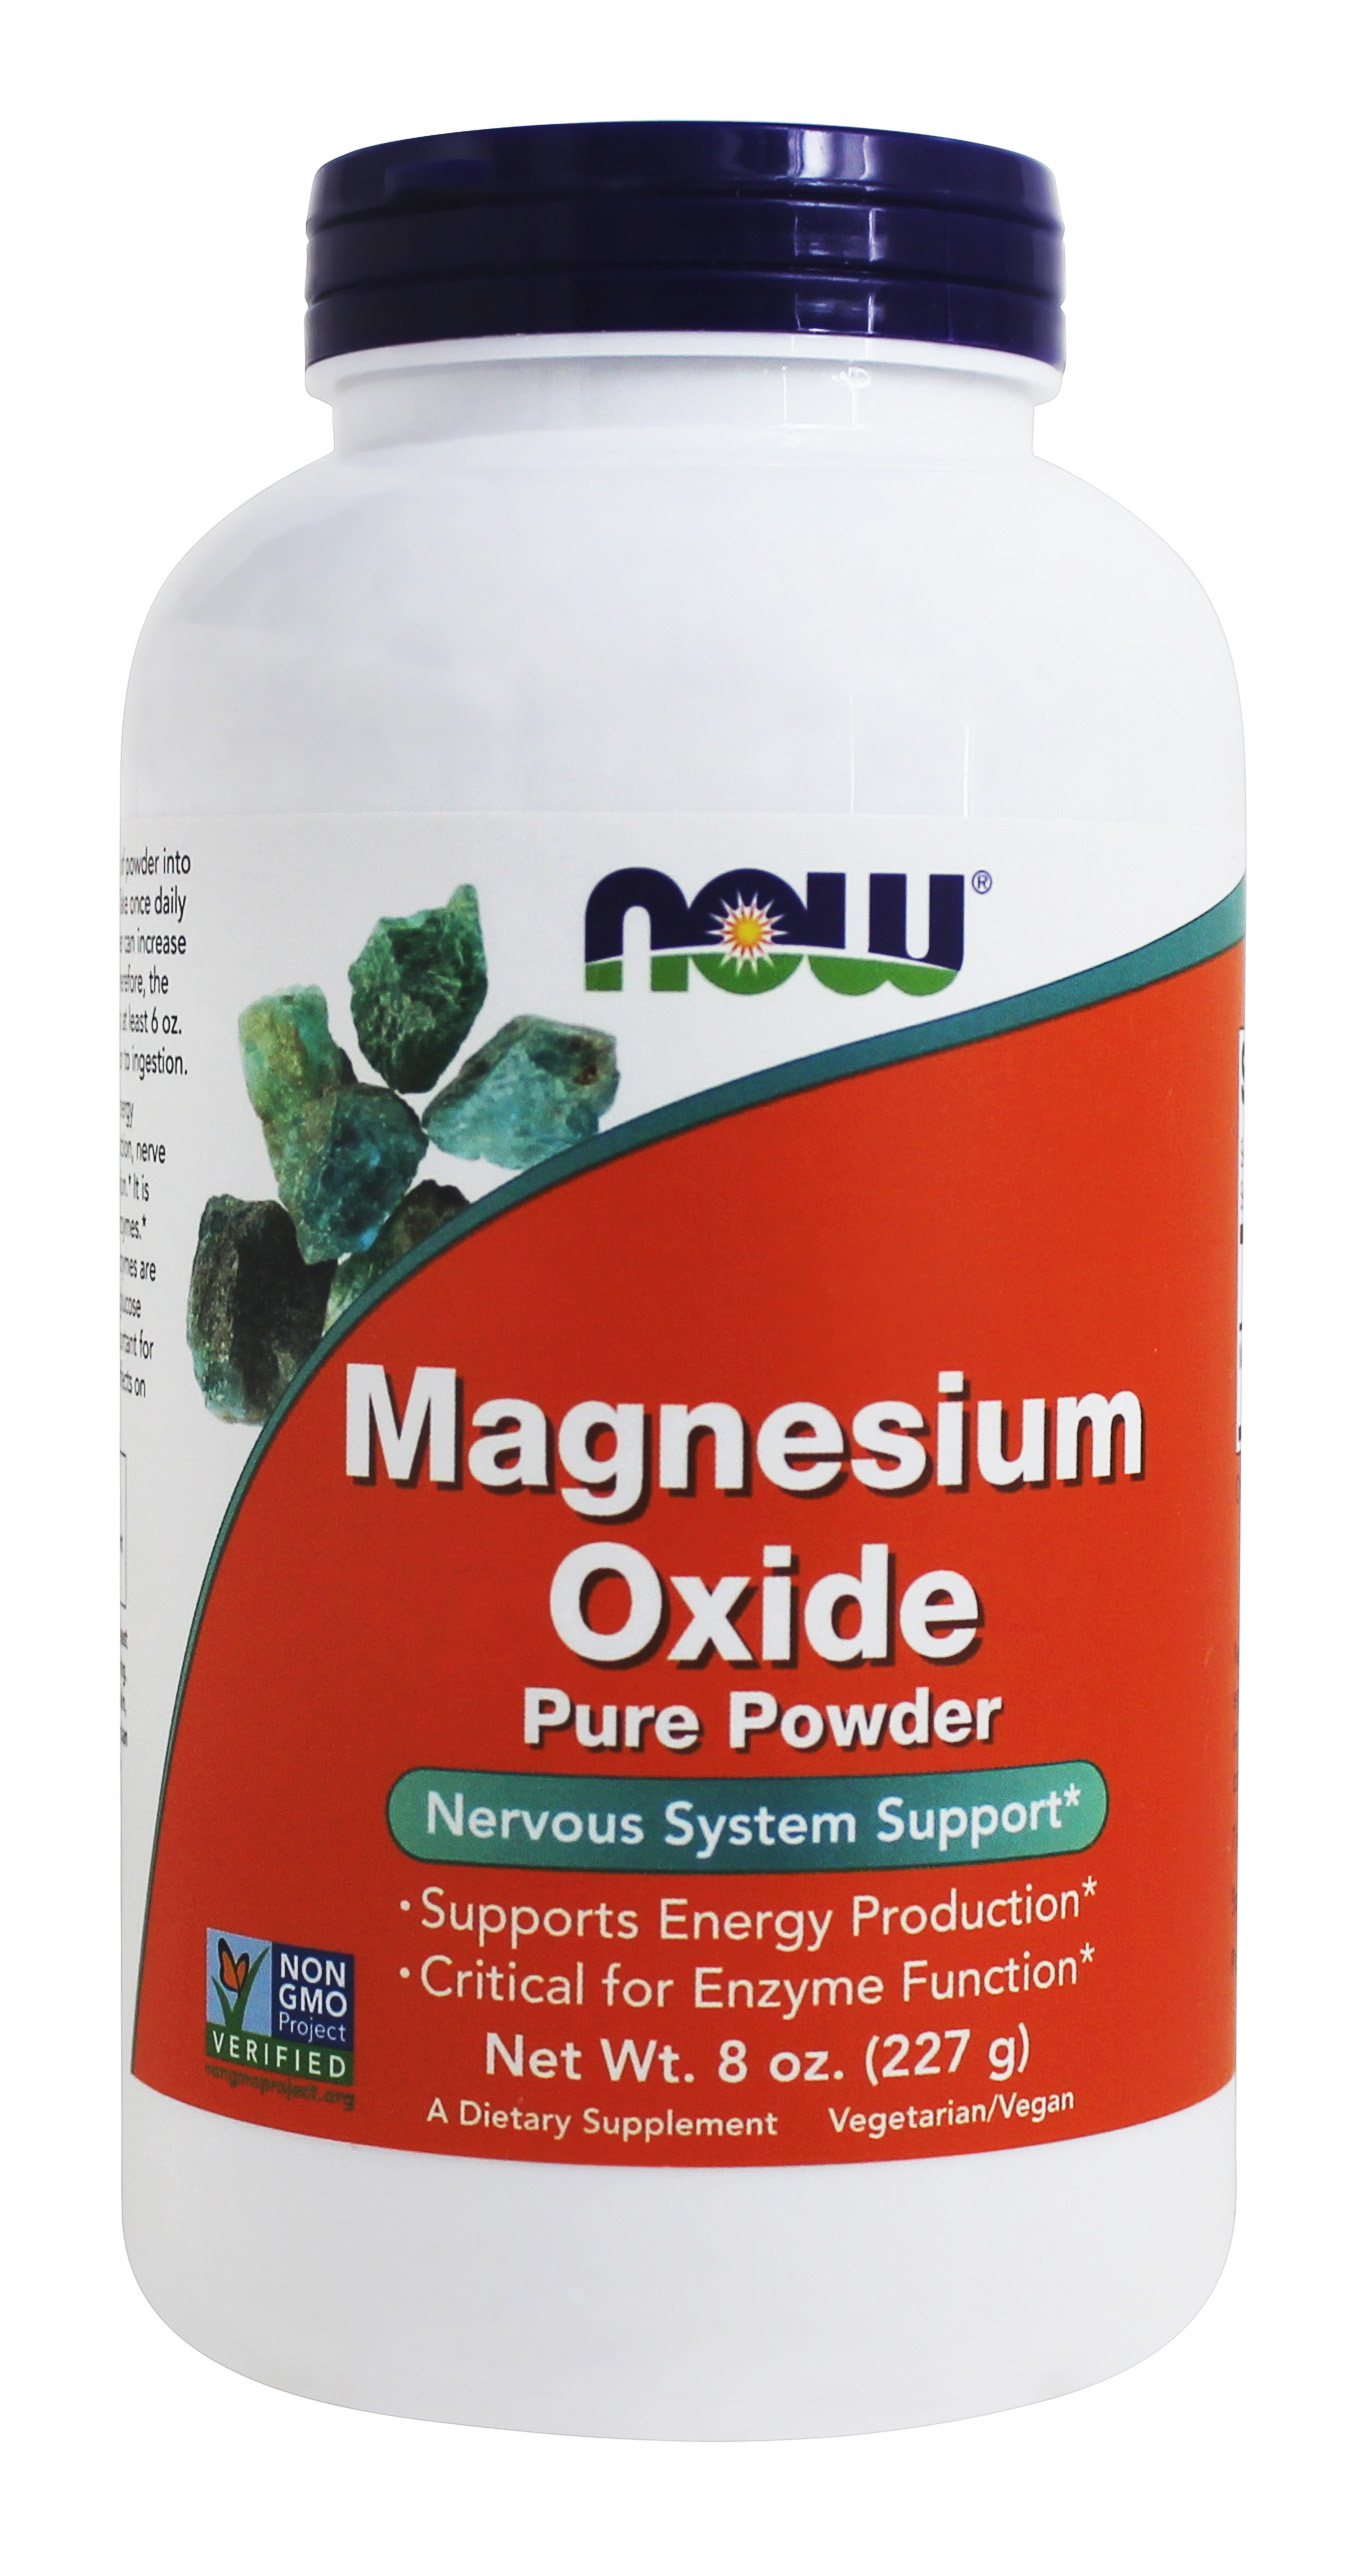 Magnesium Oxide Uses : Buy now foods magnesium oxide powder oz at